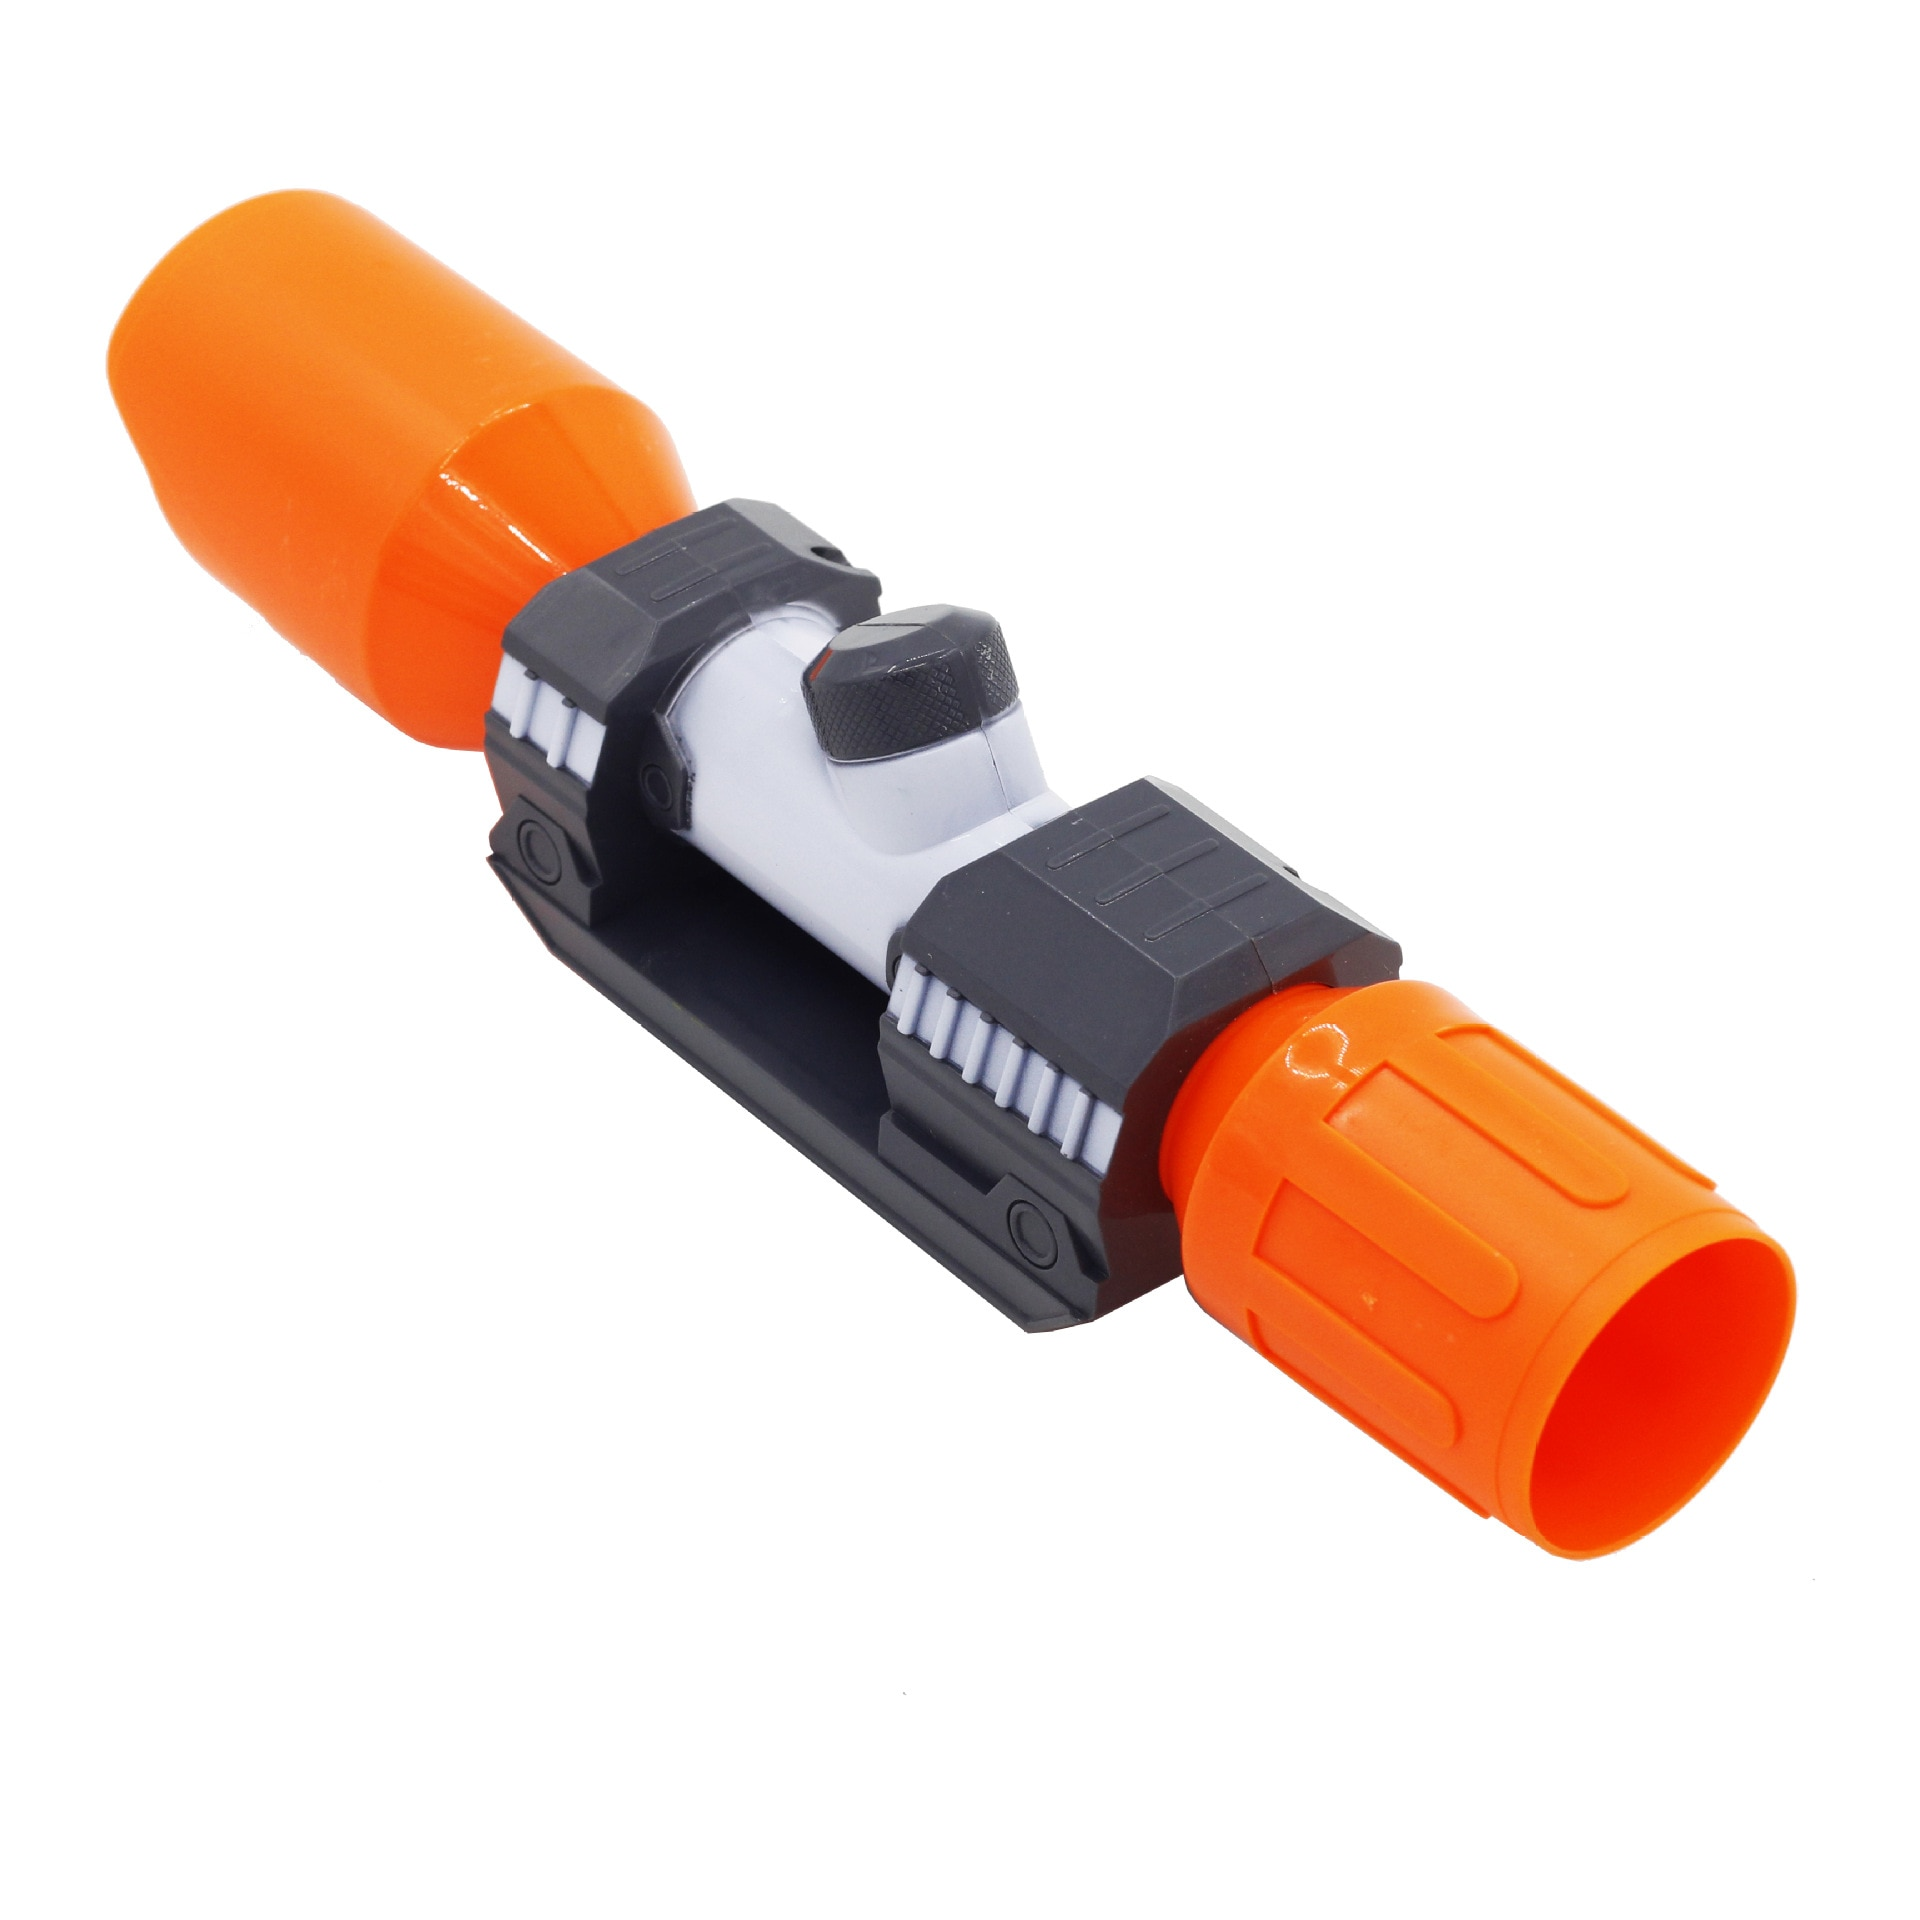 compatible modified part front tube sighting device for nerf elite series fit for kids toy gun Soft bullet sight For Universal Compatible Modified Part Front Tube Sighting Device for Nerf Elite Series 6.4 * 4.5 *23.5cm